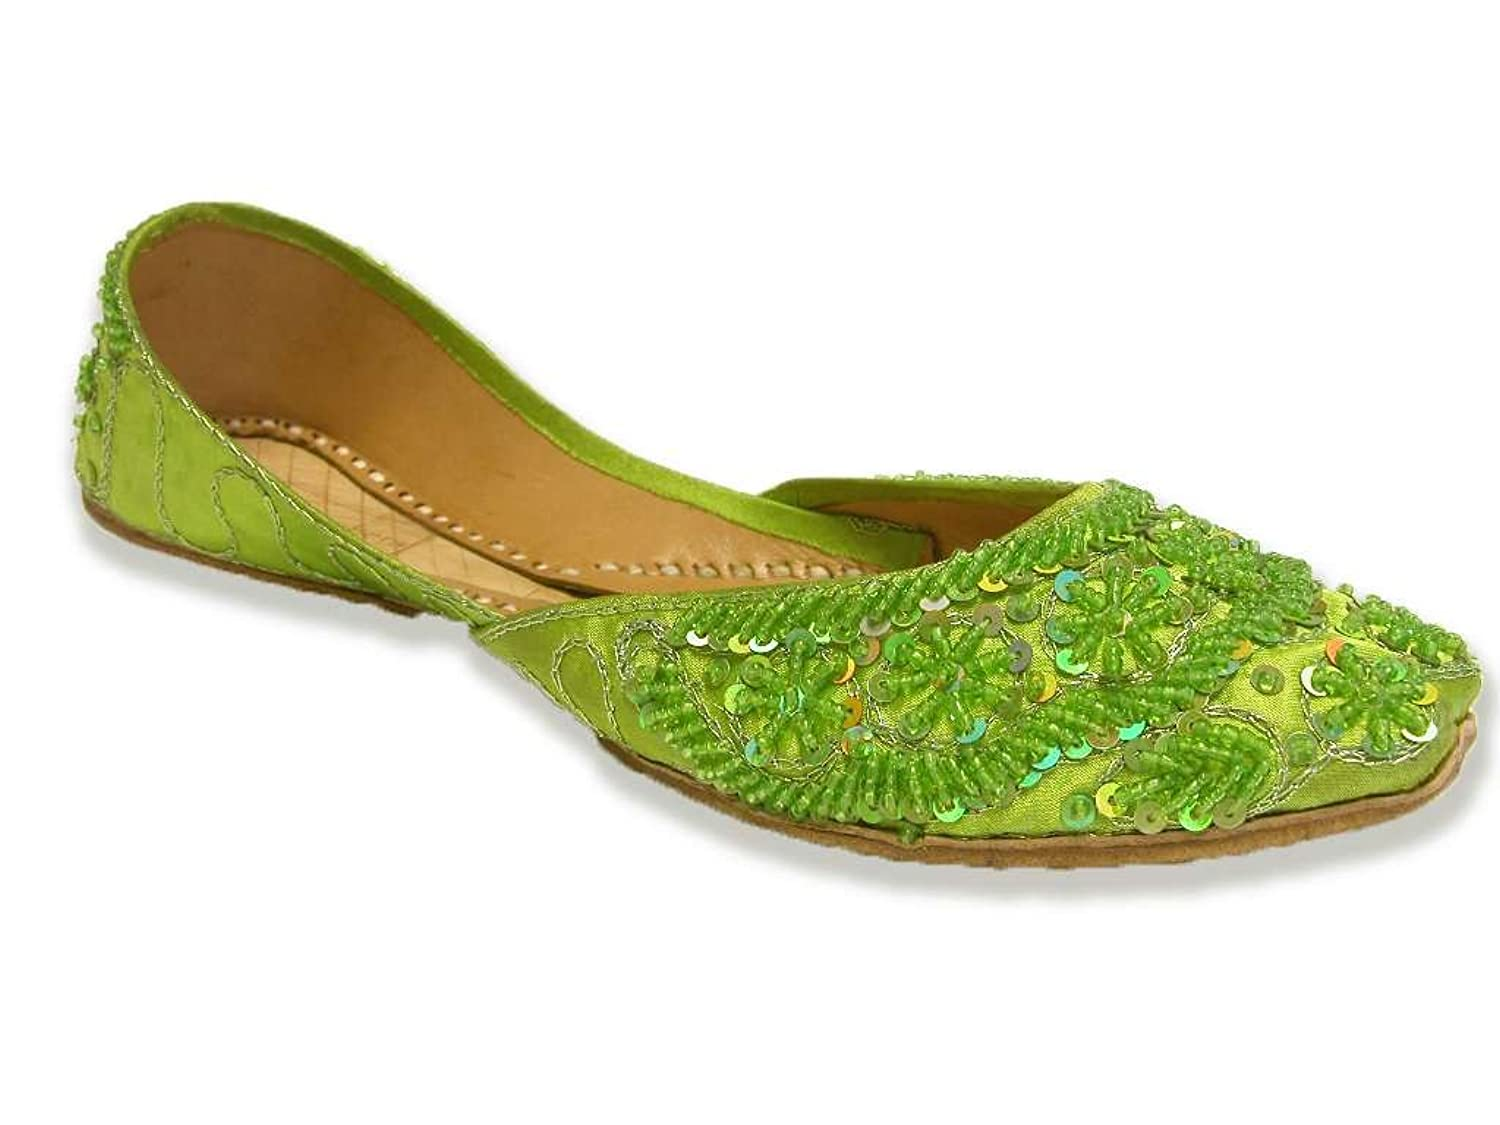 Parrot Green Beaded Indian Flats Bollywood Sari Shoes Lime Belly Dance Khussa B0722KQG3X 8 B(M) US